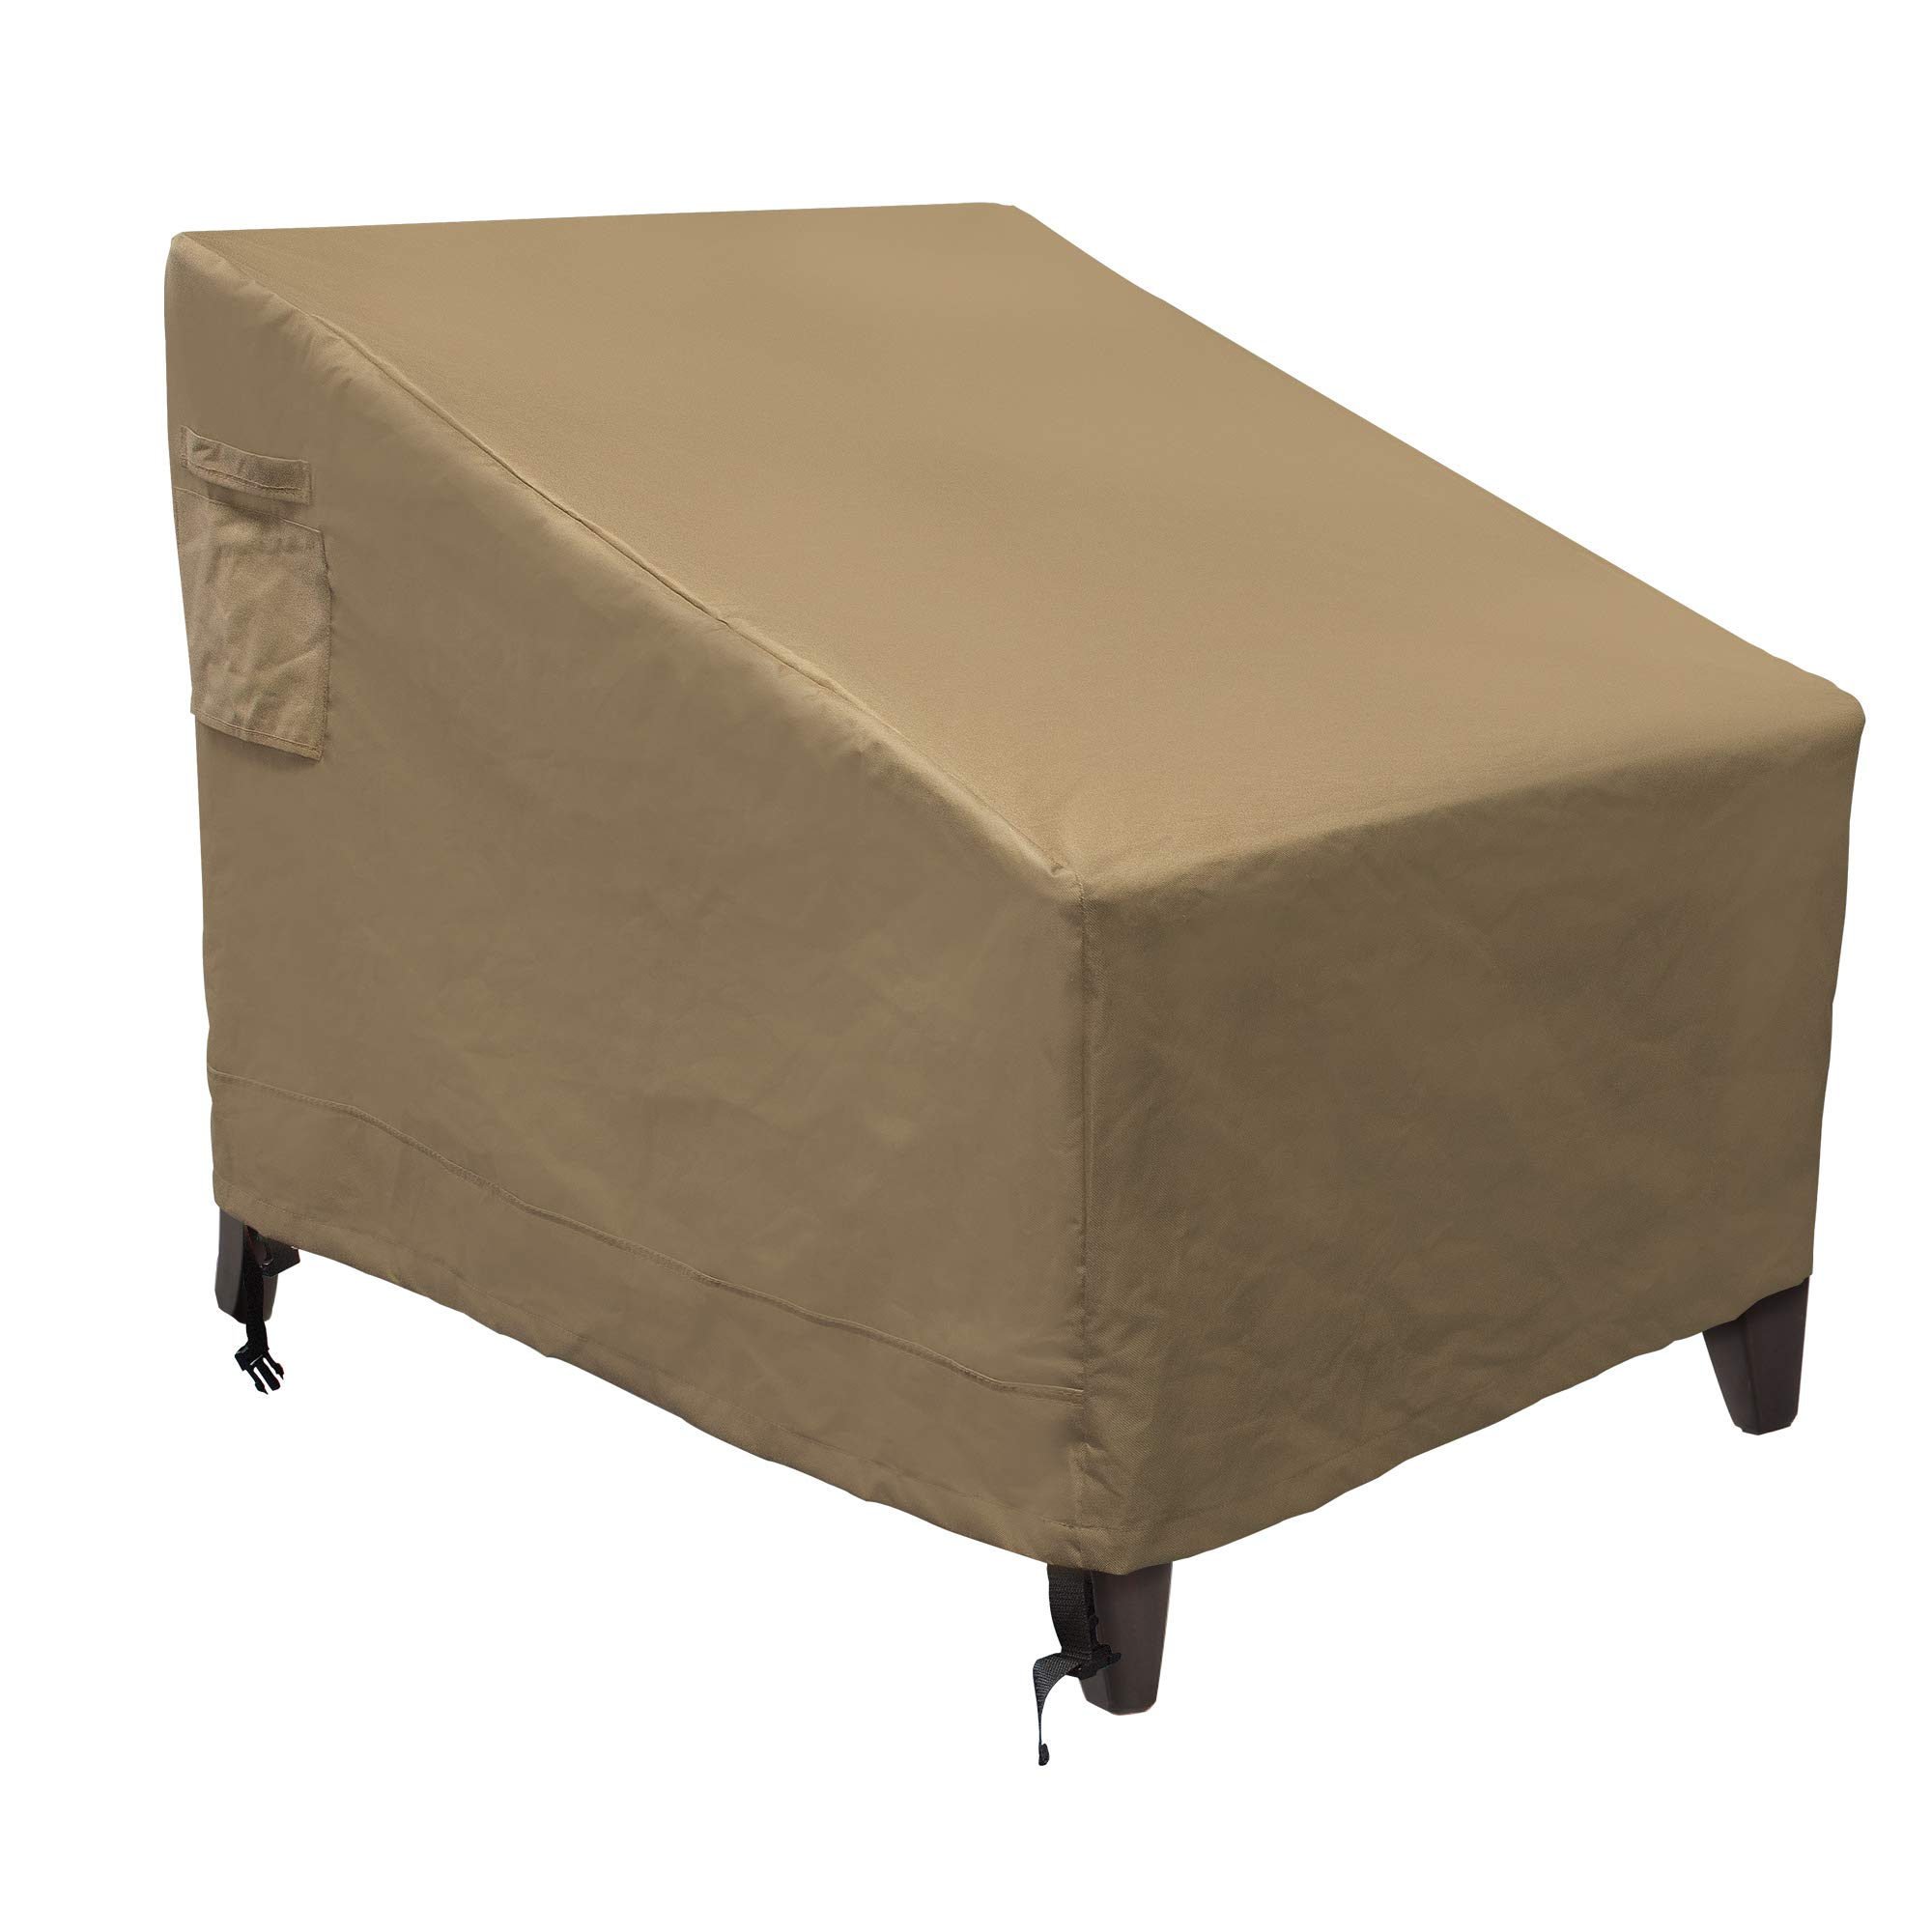 NEXTCOVER 2-Seater Deep Lounge Sofa Patio Cover-600D Canvas Heavy Duty Waterproof Fade Resistant -Tan Color,NP21820.